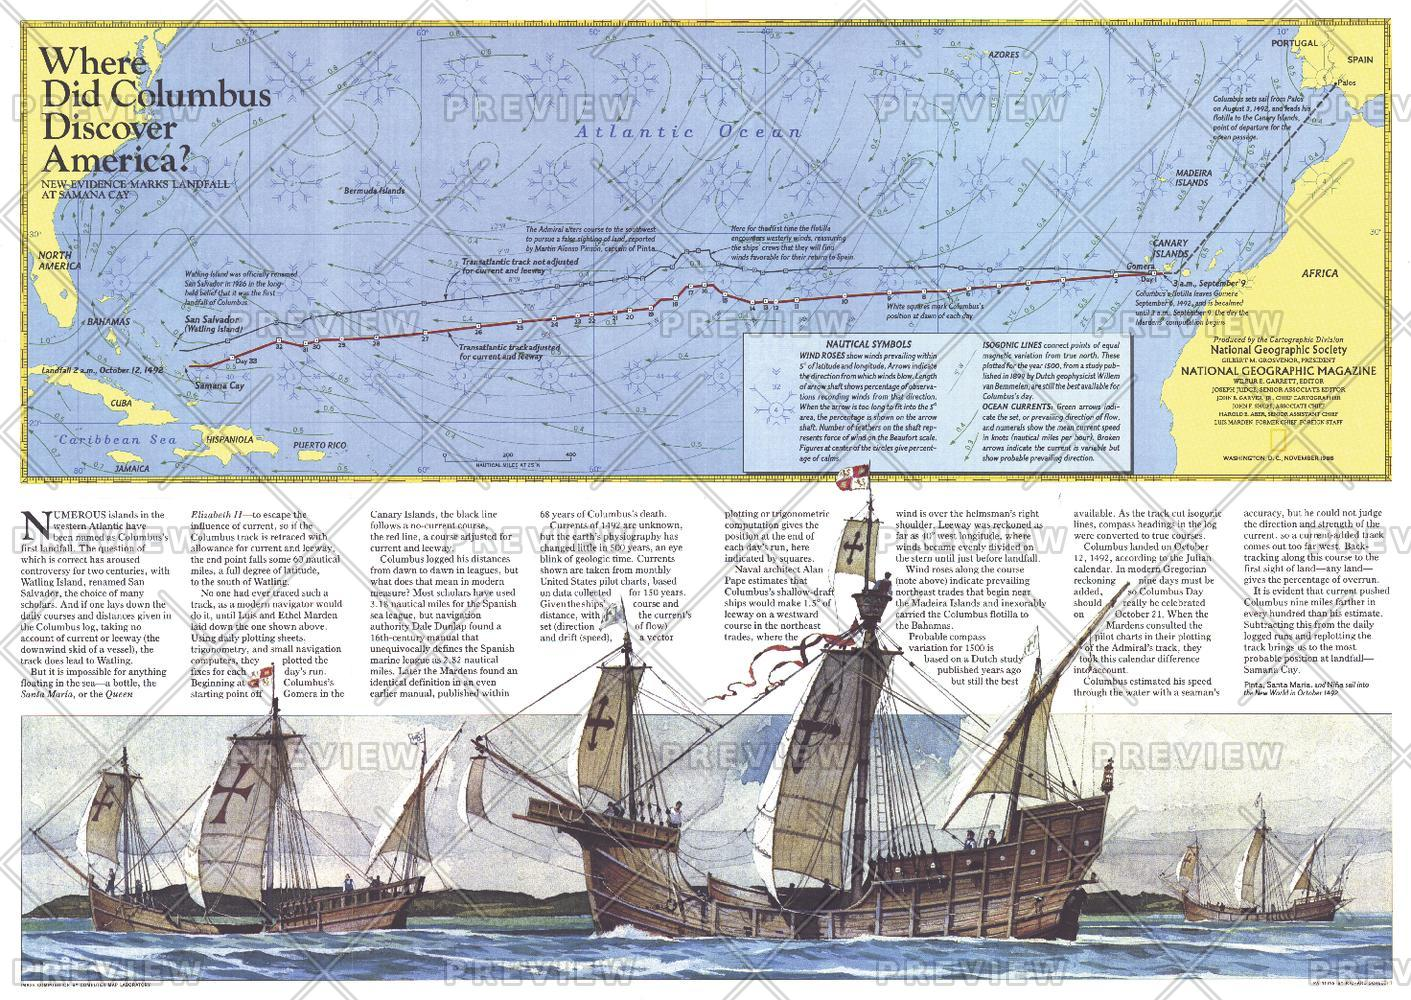 Where Did Columbus Discover America?  -  Published 1986